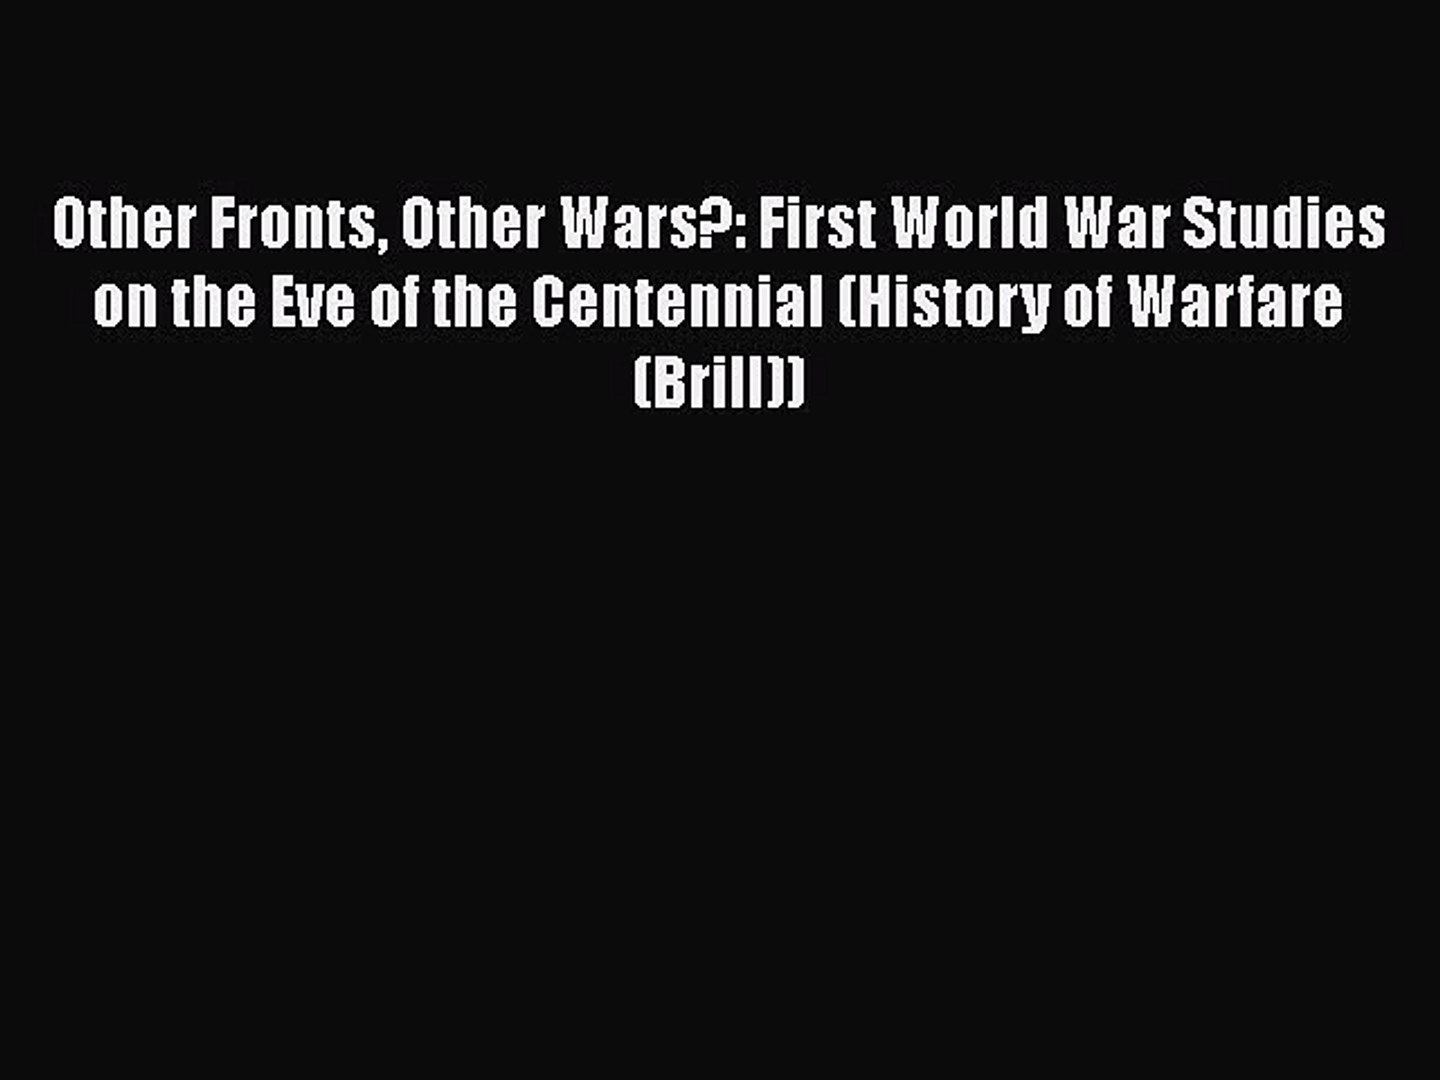 [Read book] Other Fronts Other Wars?: First World War Studies on the Eve of the Centennial